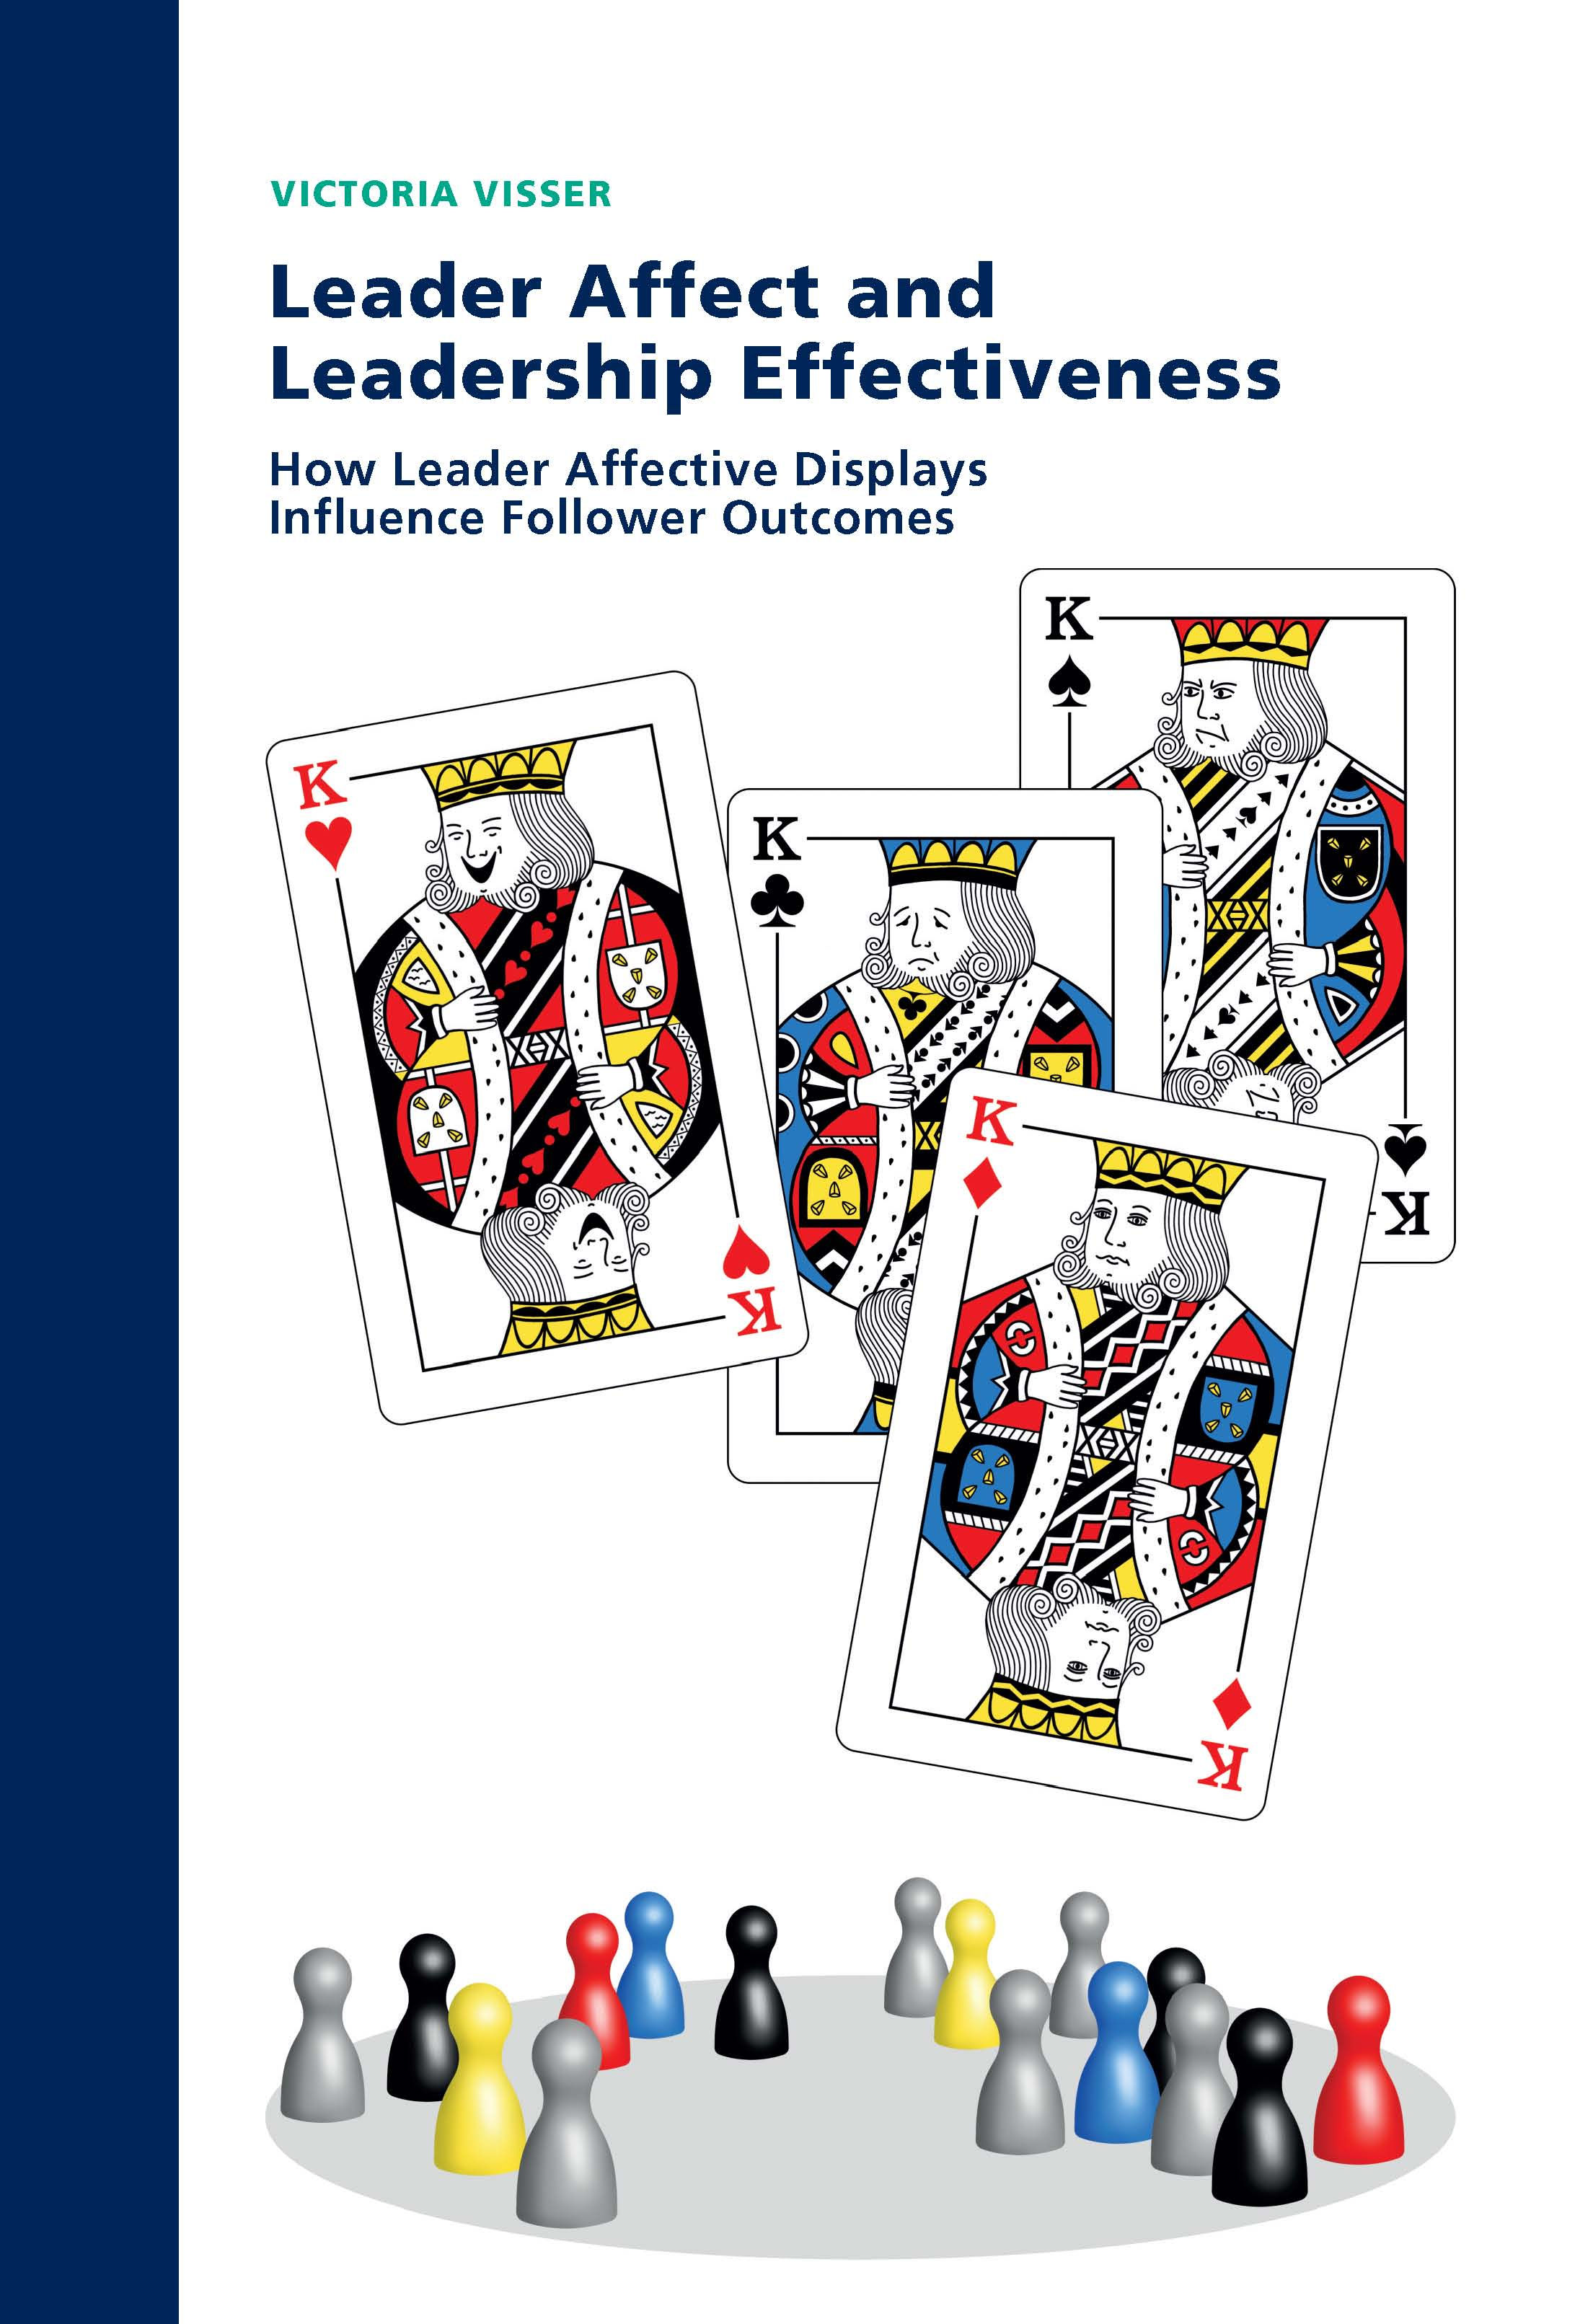 Leader Affect and Leadership Effectiveness: How leader affective displays influence follower outcomes